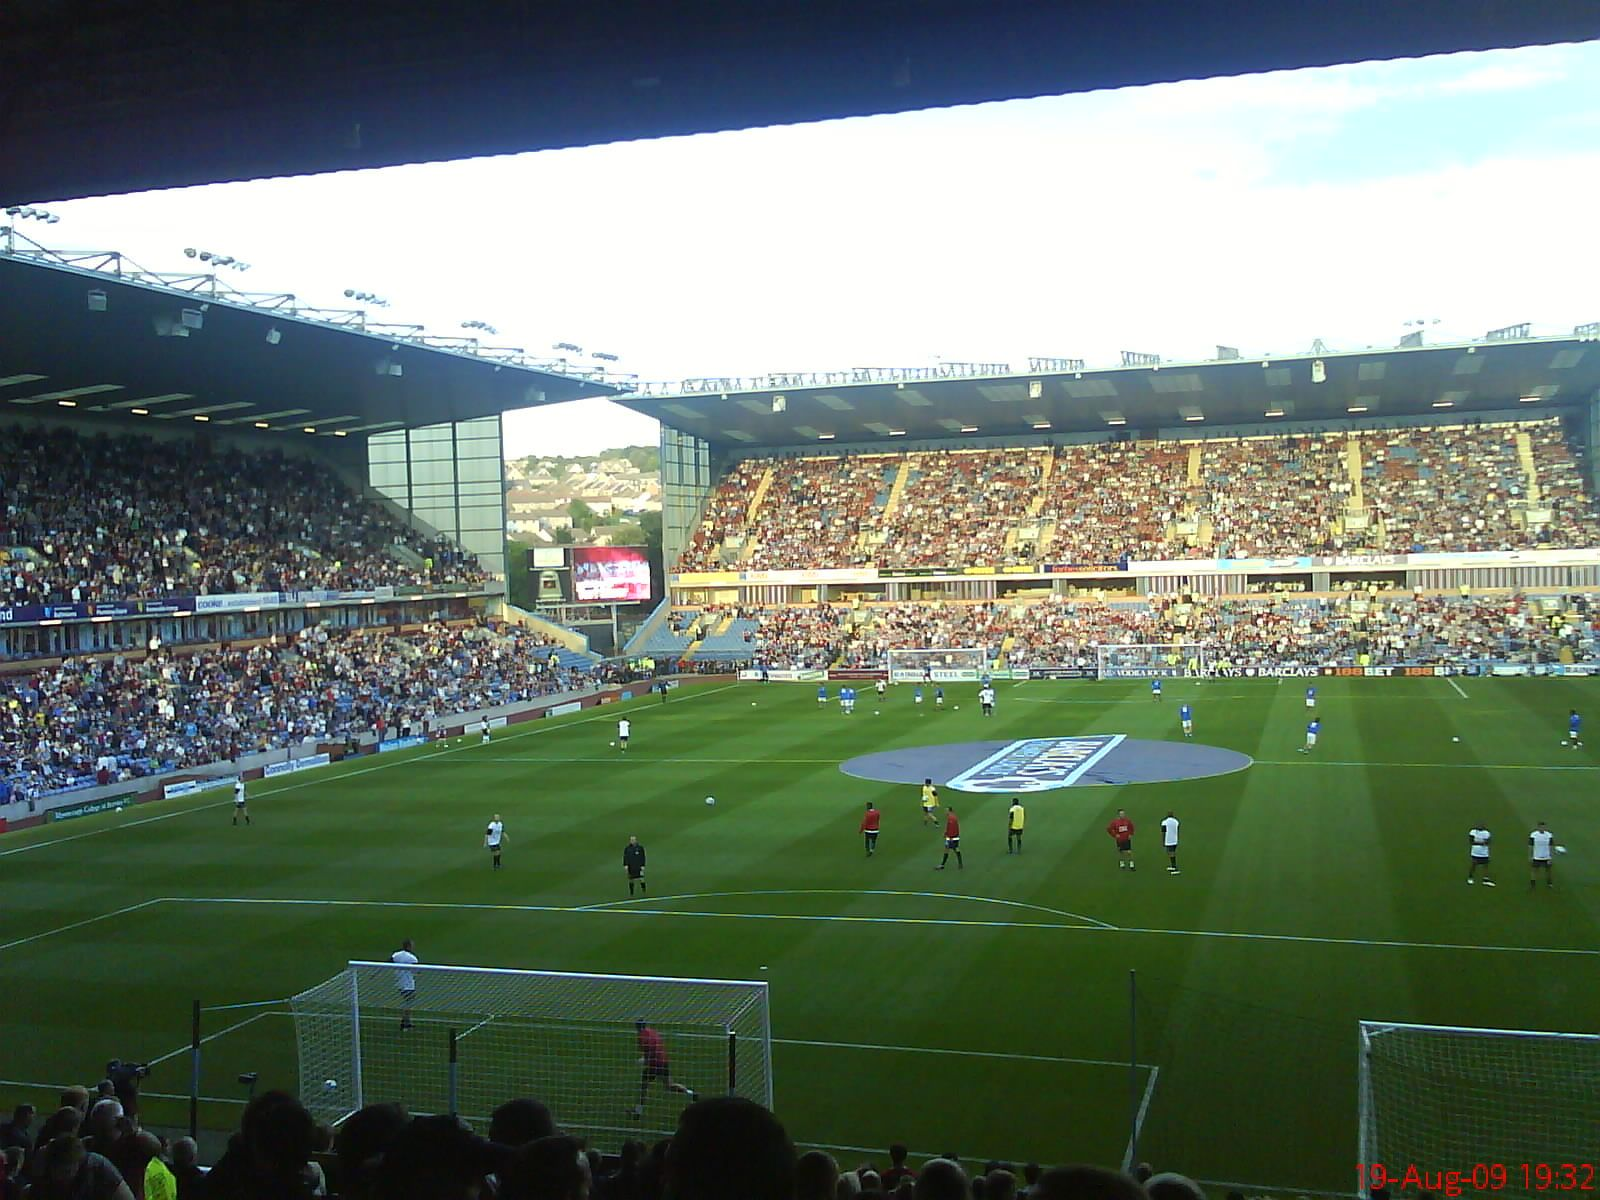 Turf Moor, Burnley. If lower league football is your thing, this is a venue well worth the effort to get to.